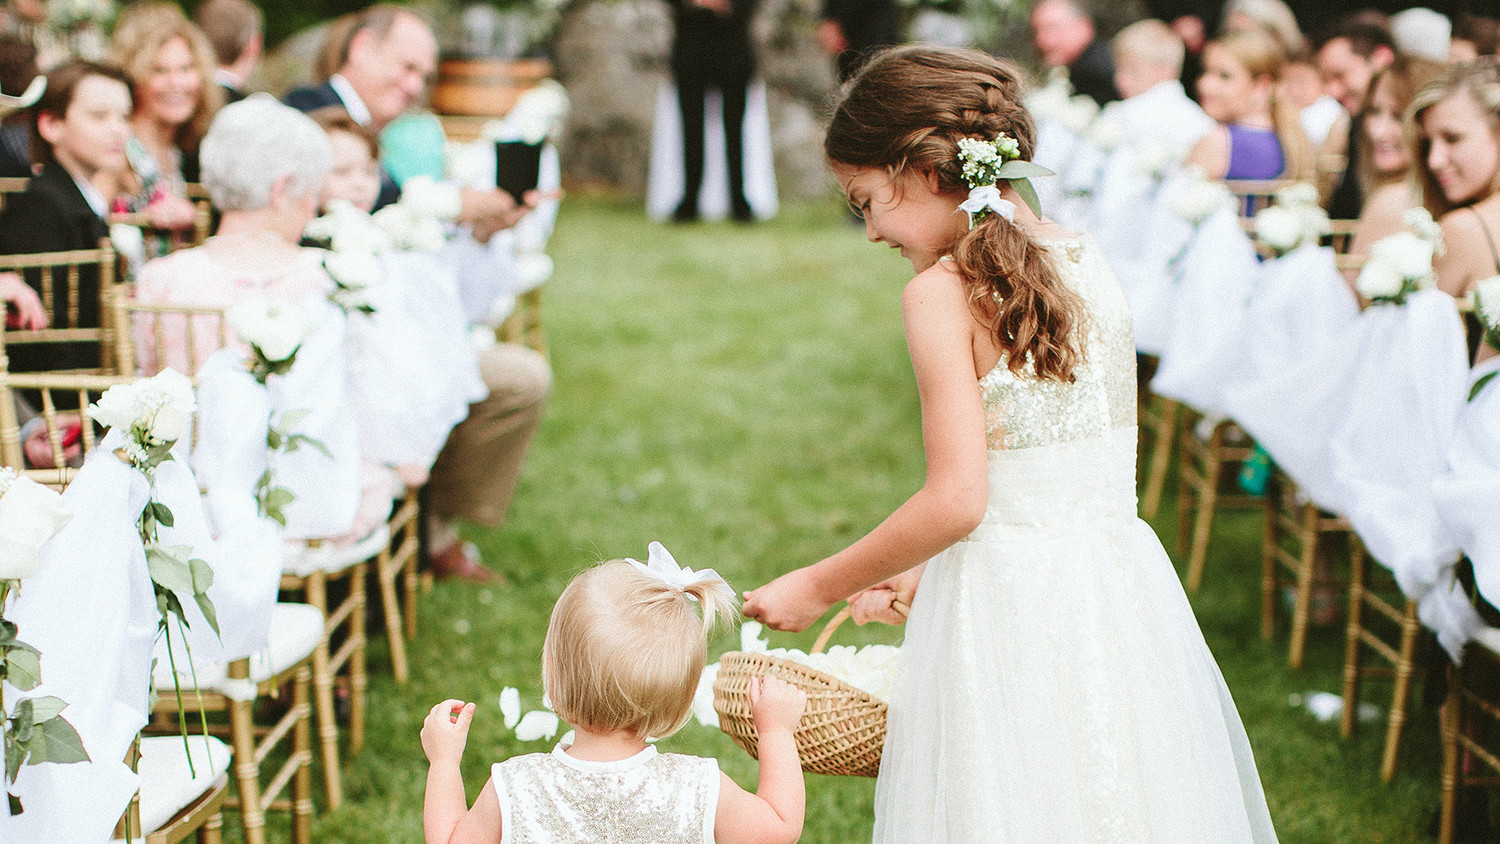 688634c6188 Read This Before Asking Your Flower Girl to Toss Petals Down the Aisle